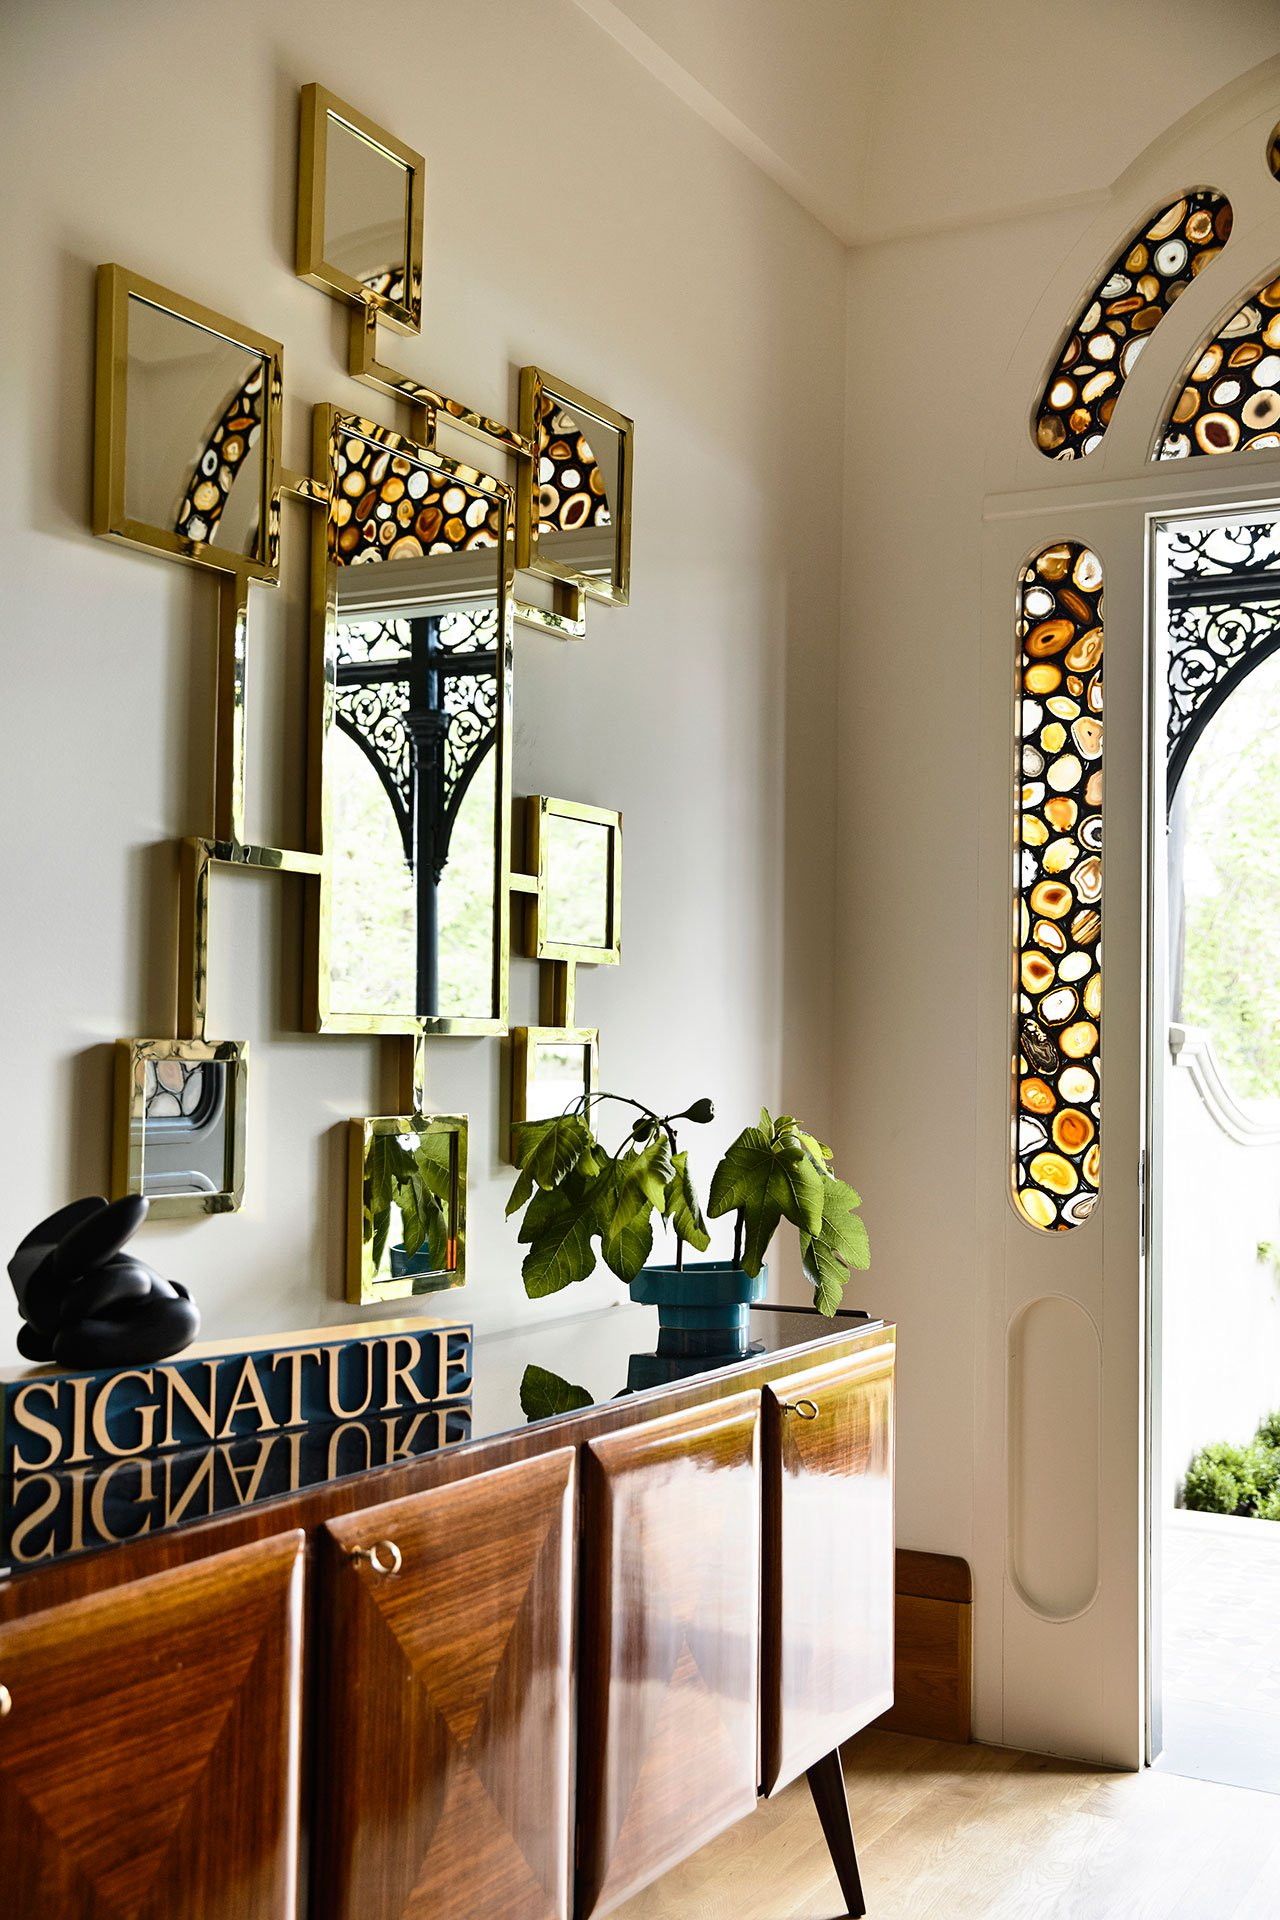 The entryway is done with art deco mirrors and furniture and mosaic glass